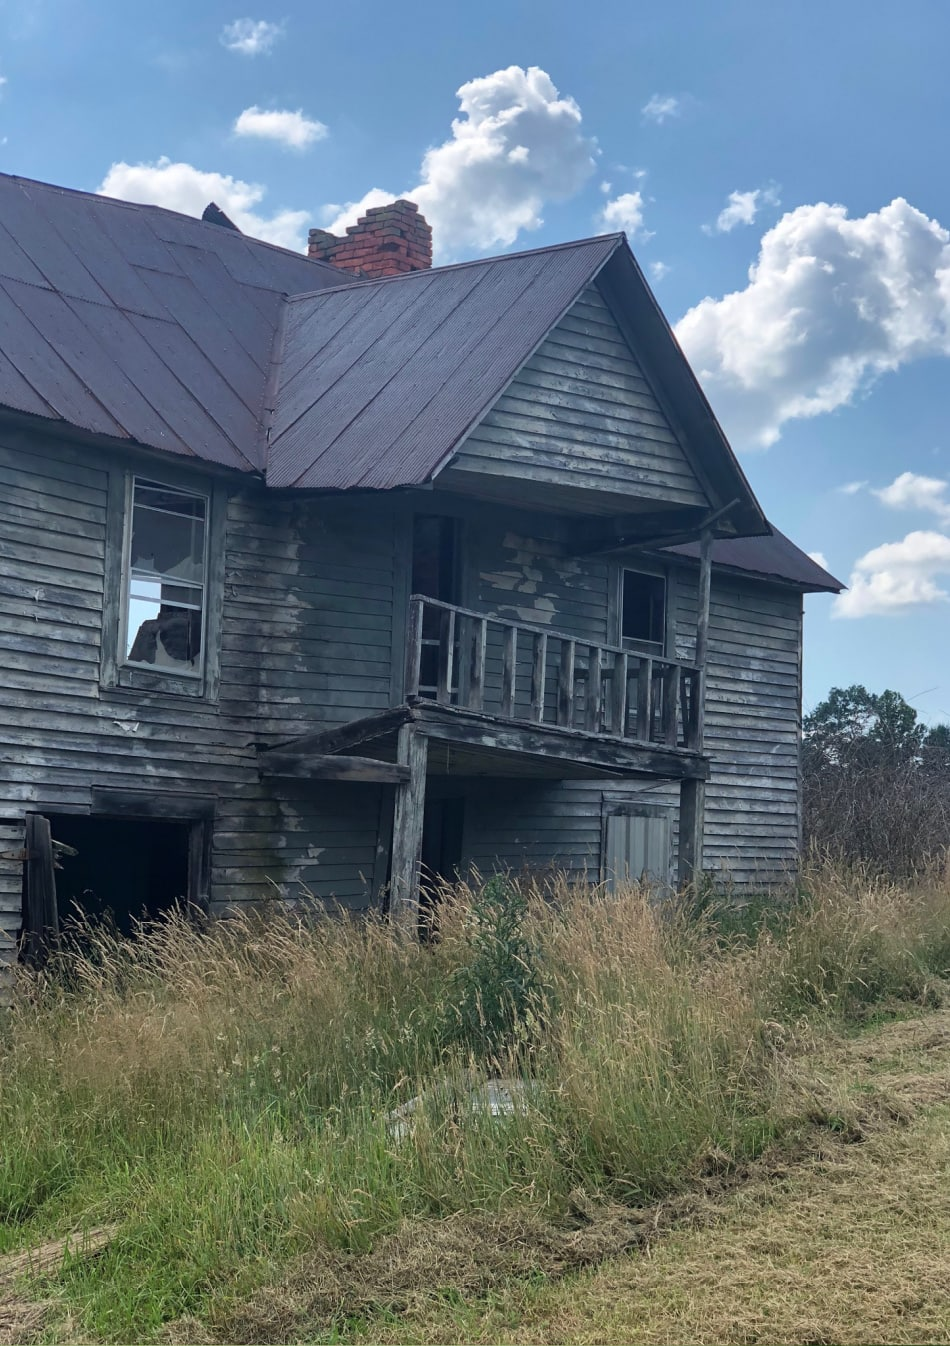 old abandoned house in the country